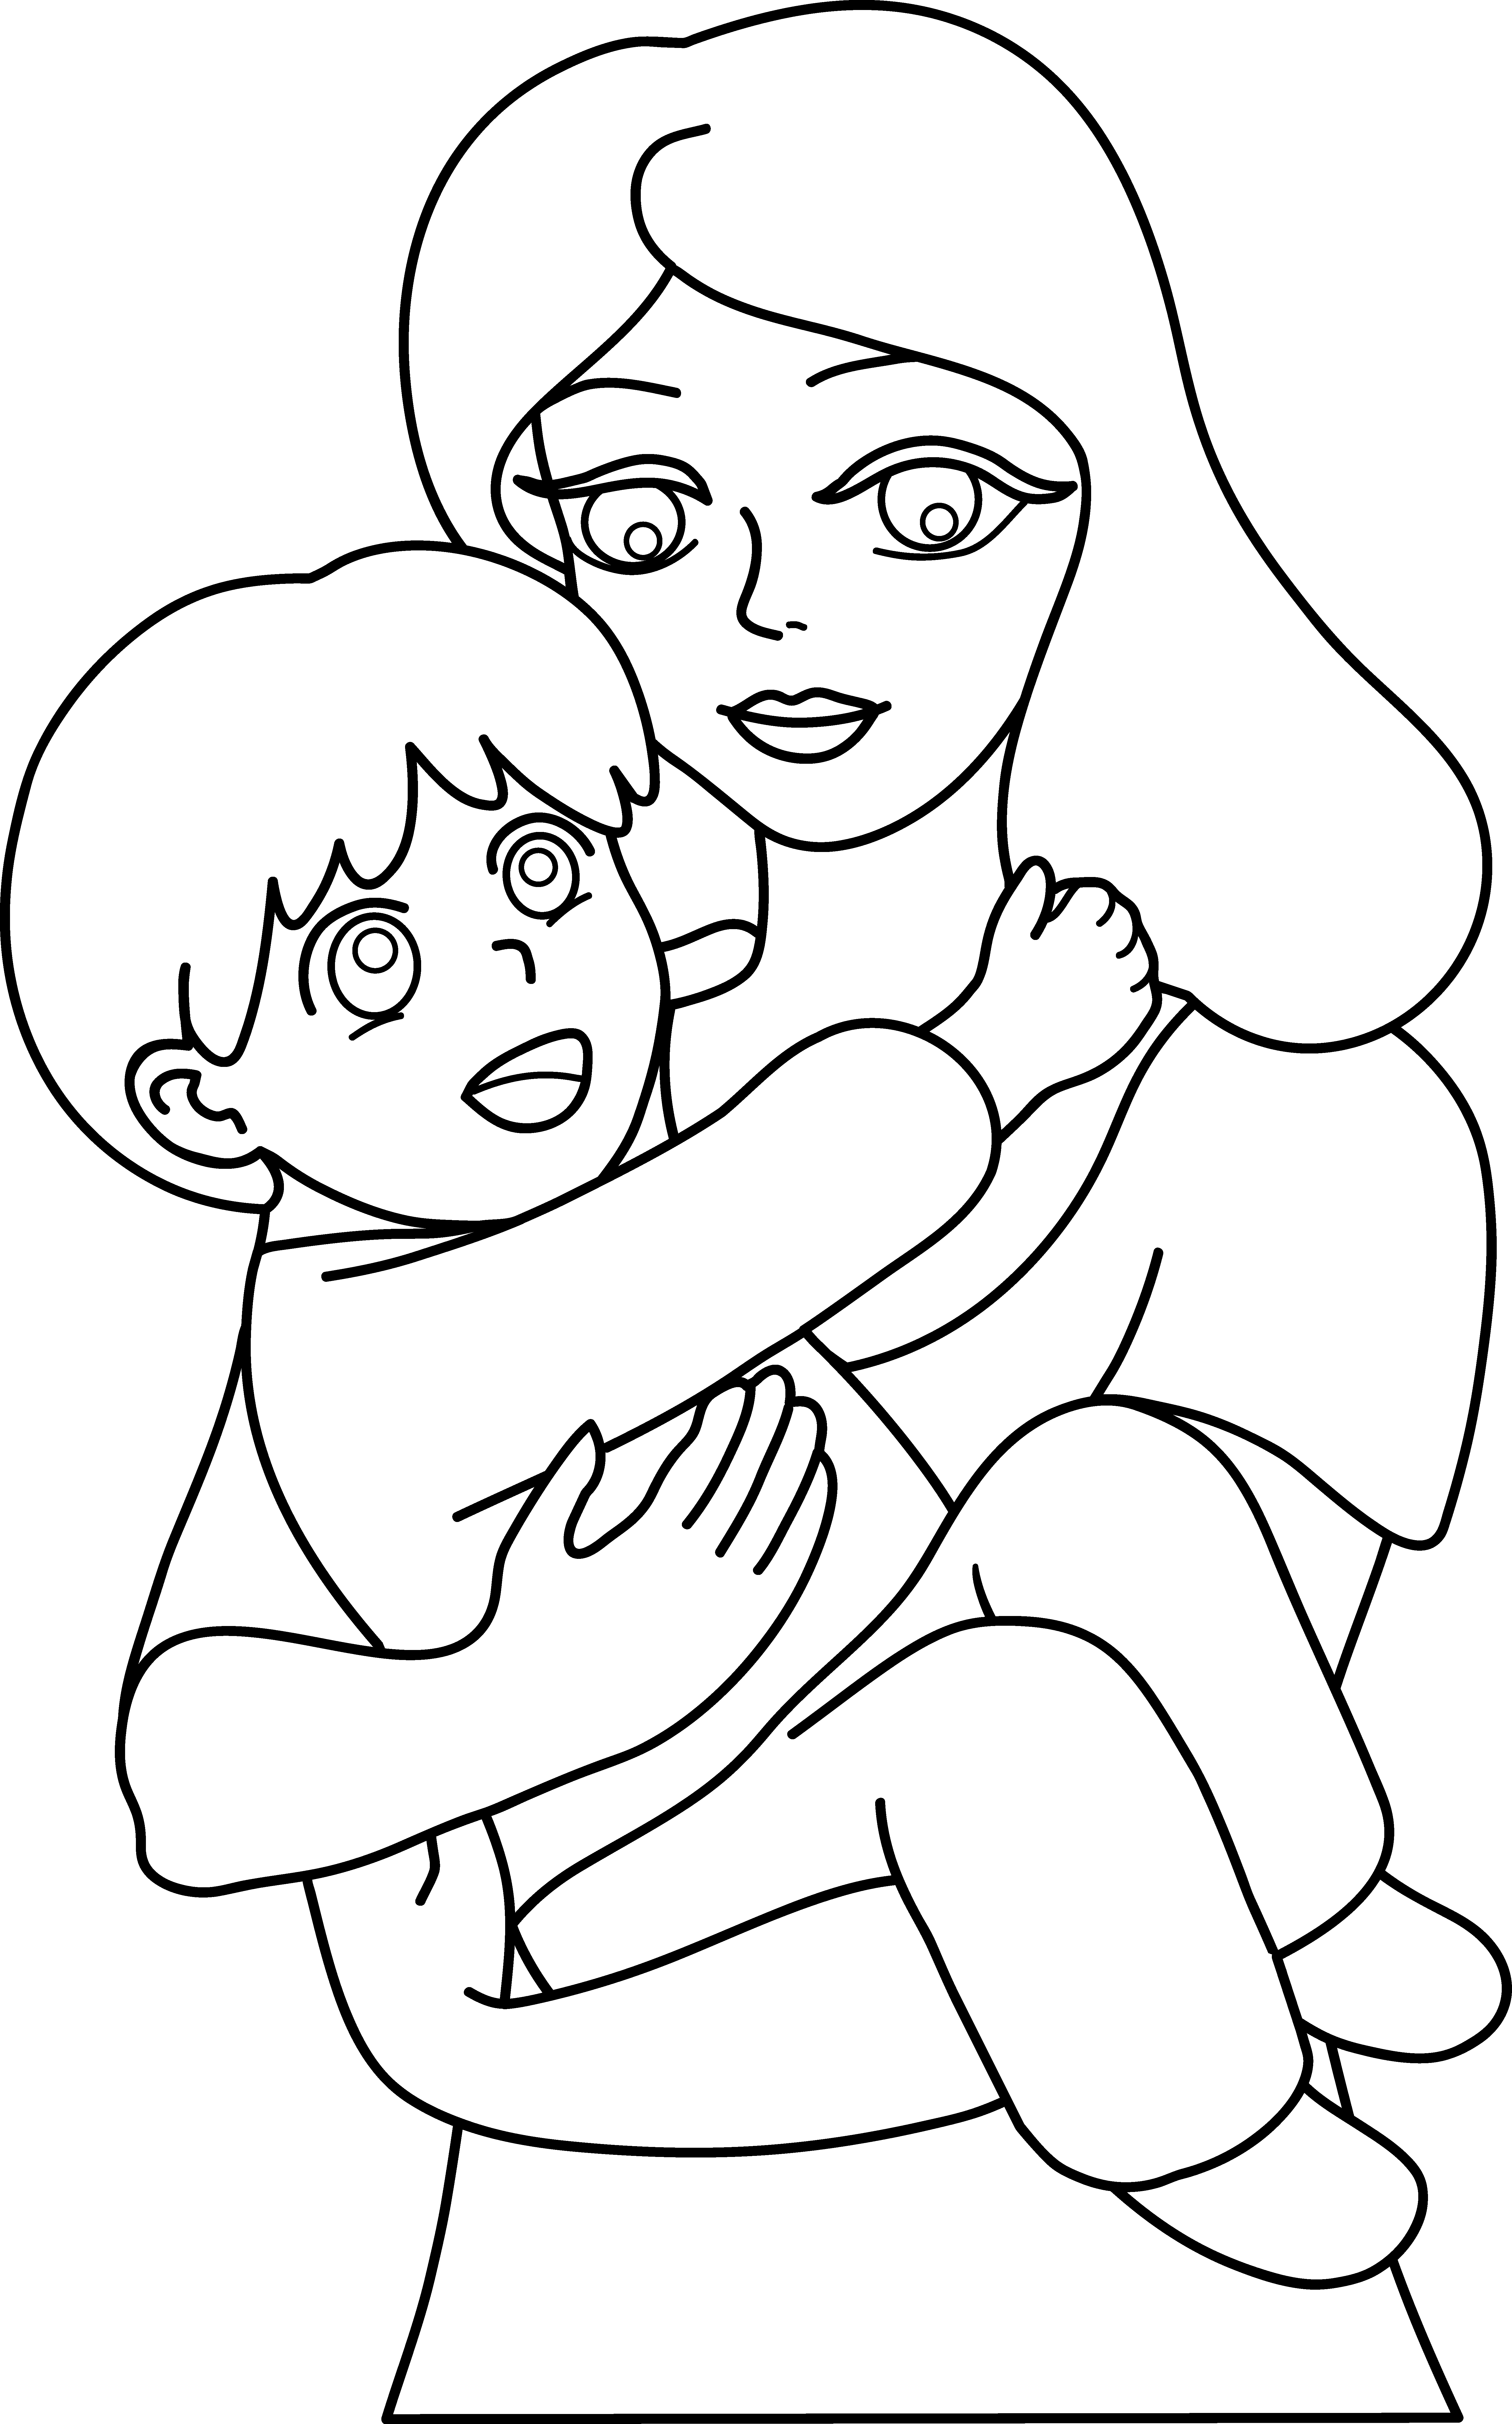 Clipart mom parent. Mother and child line